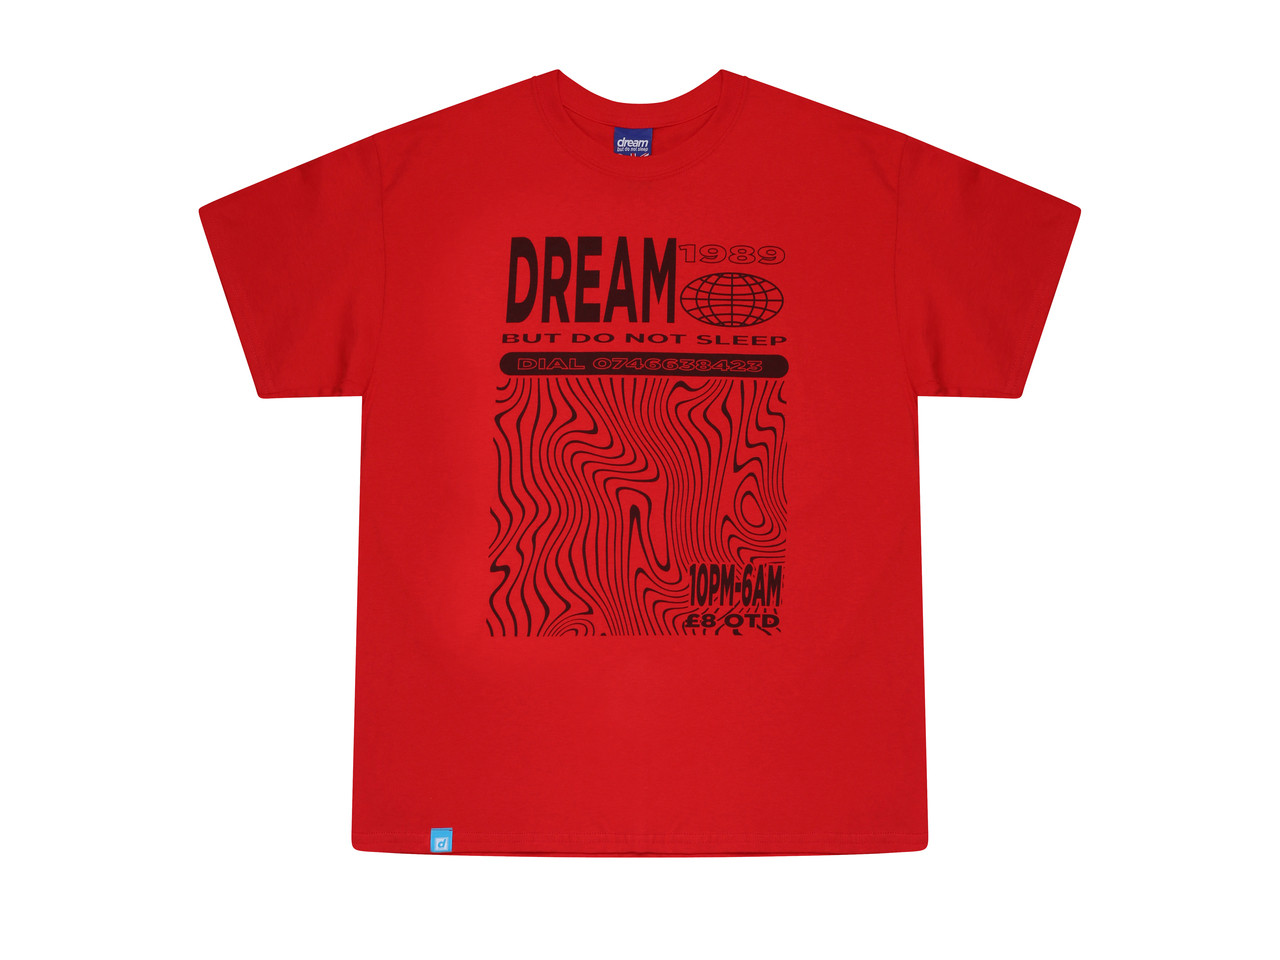 Red Short Sleeved T-shirt With Dream Globe Graphic